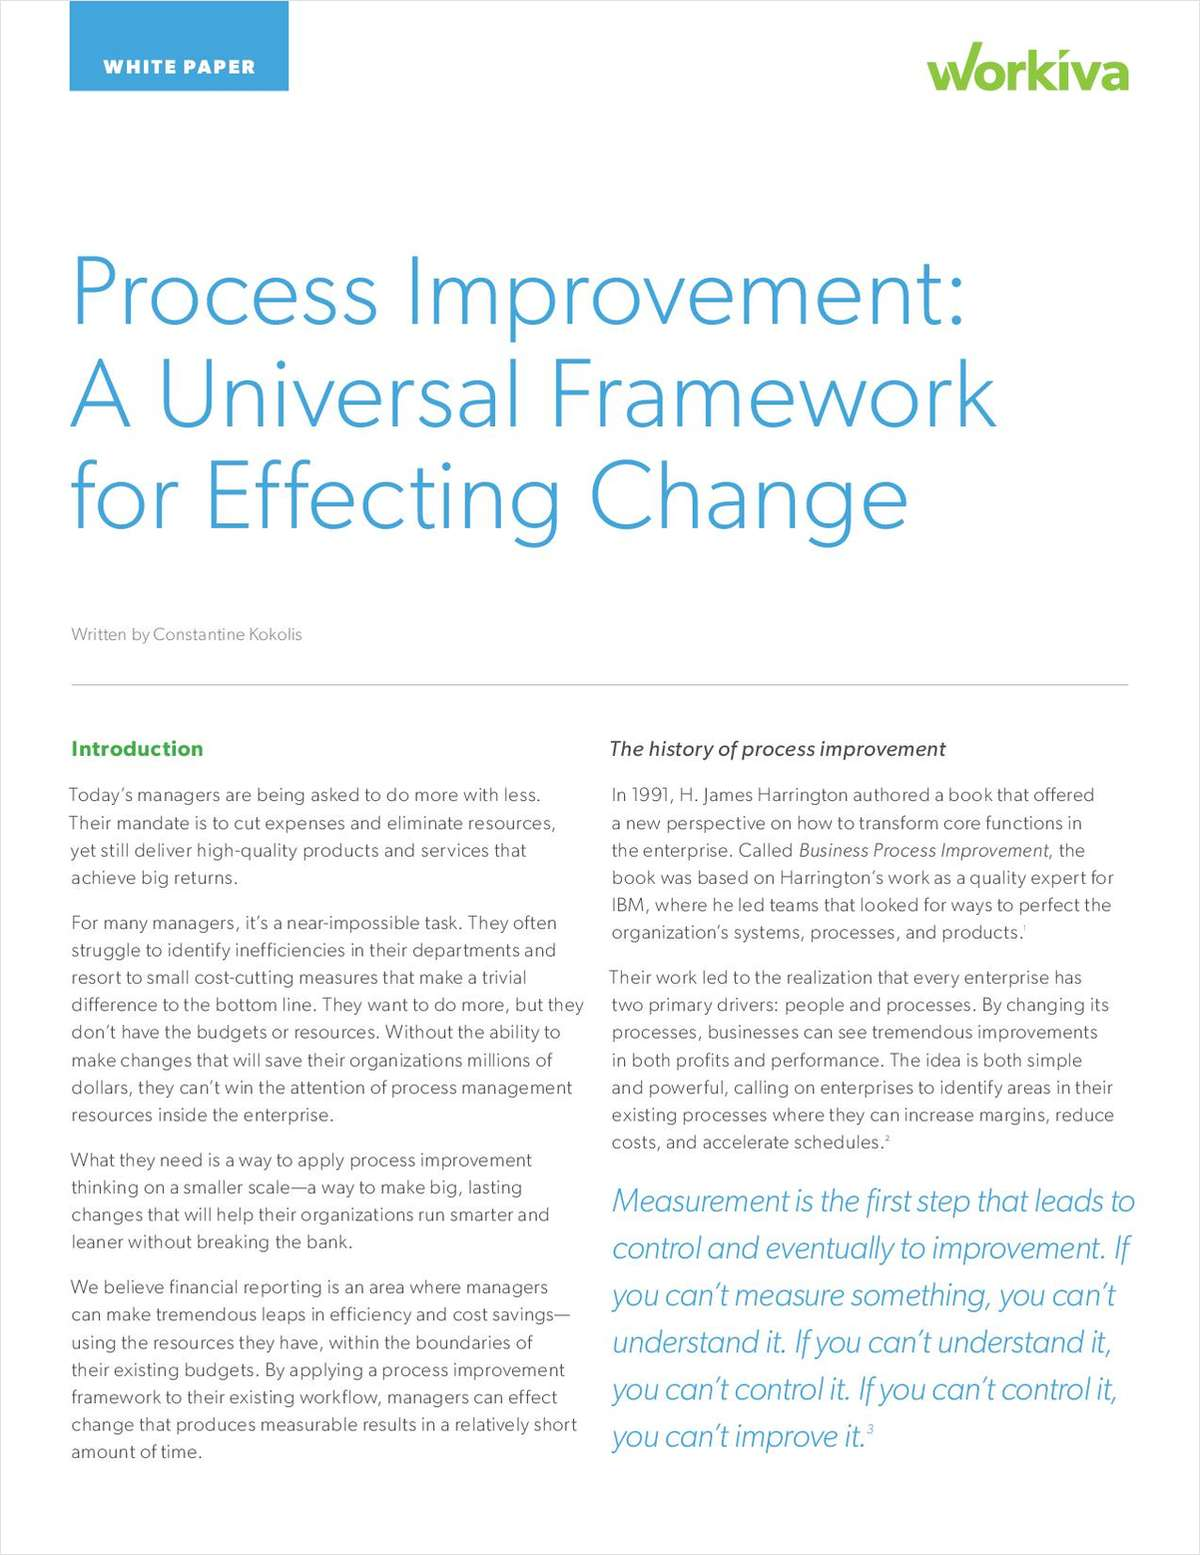 Process Improvement: How to Make Big, Lasting Changes to Run Your Organization Leaner and Smarter